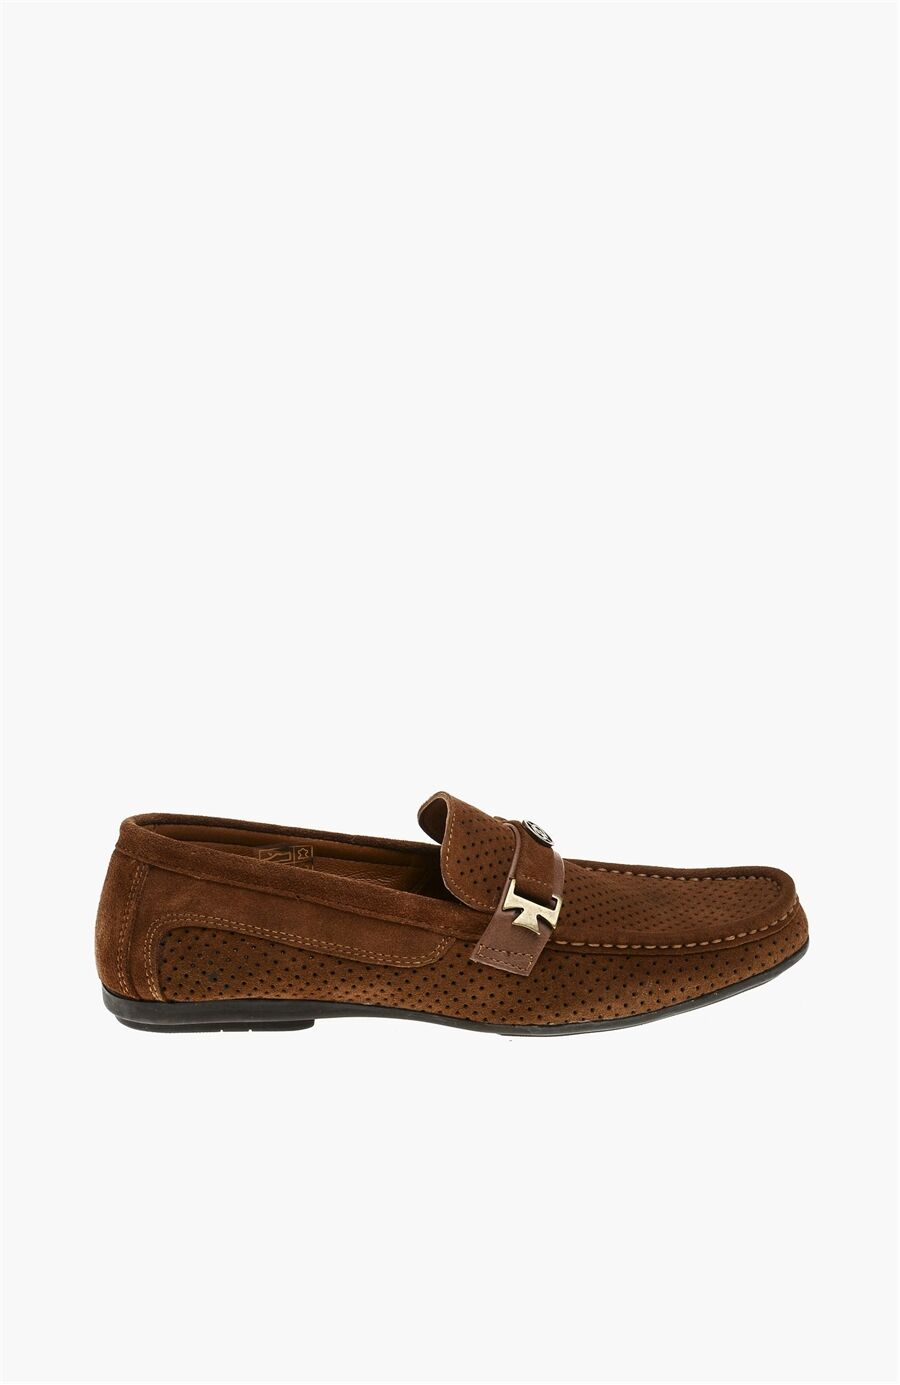 Taba Loafer